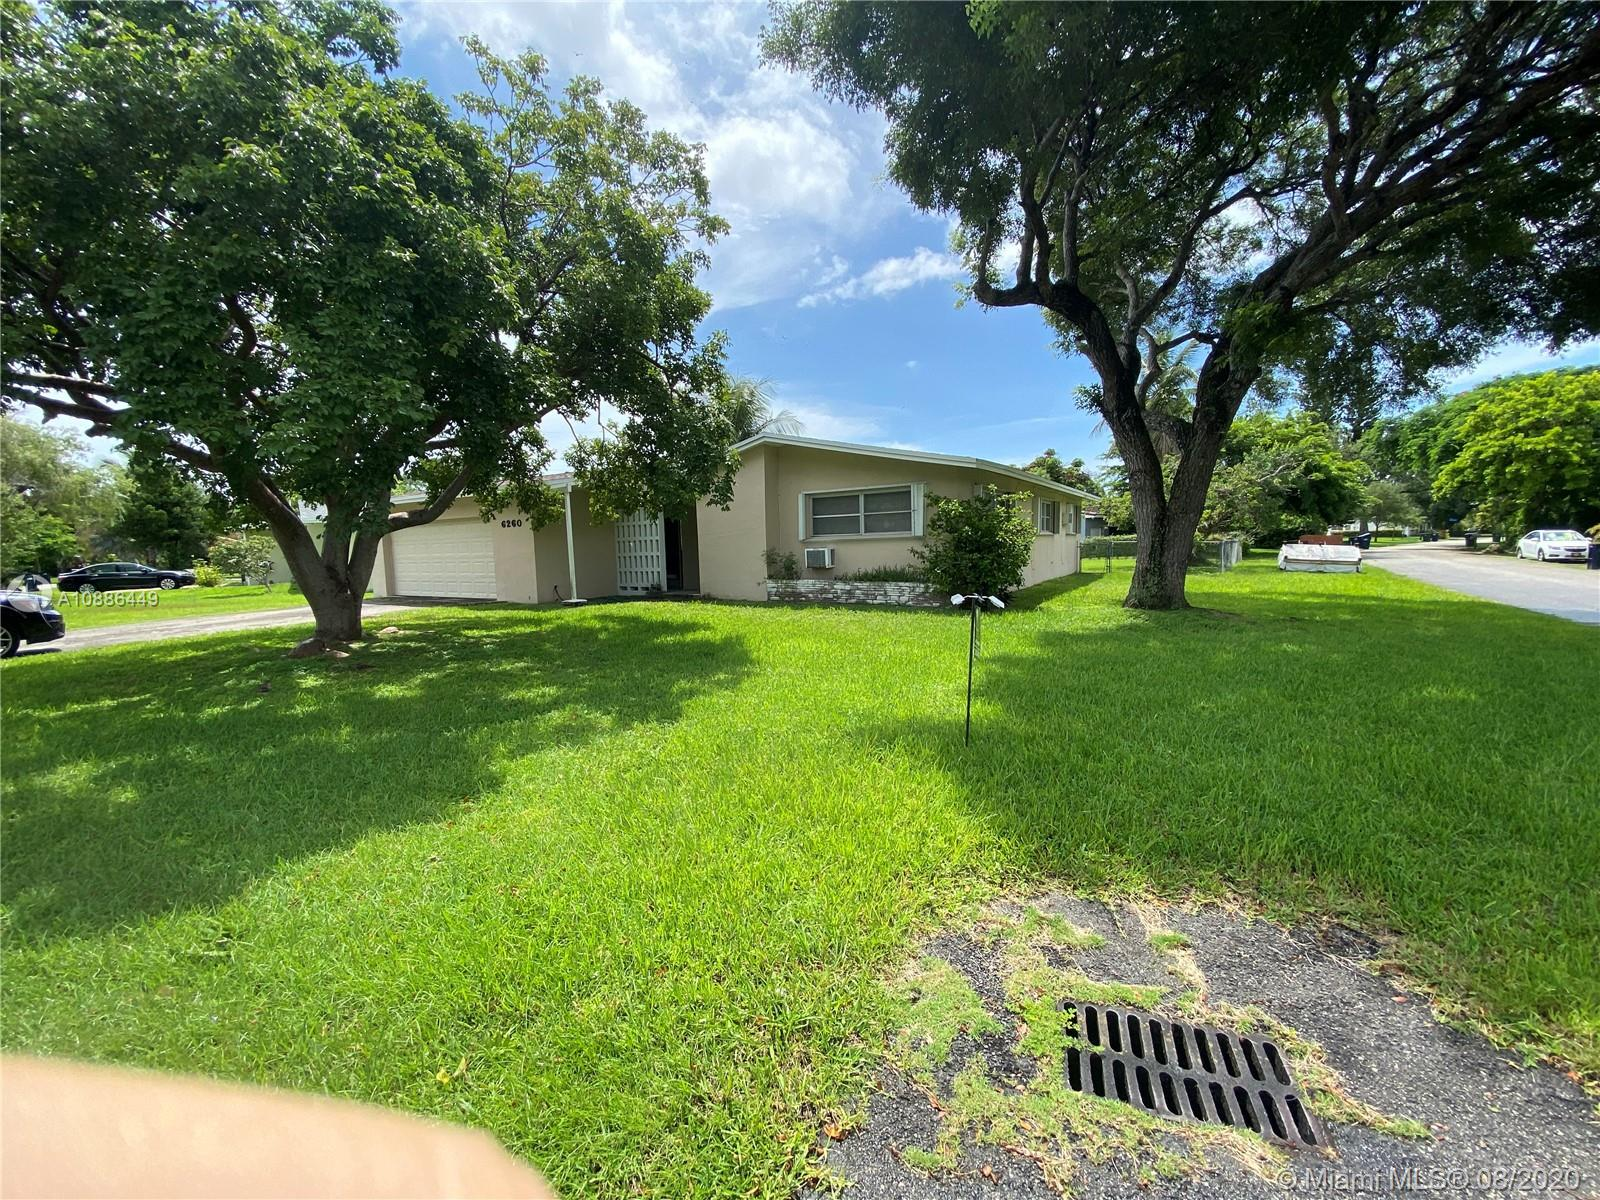 Incredible location in South Miami near University of Miami.   This South Miami home is a 3 bedroom 2 bath home with a separate 2 car garage, the home has 1700 sqft of living area on a 10K sqft lot.  OPPORTUNITY KNOCKS, great investment property.